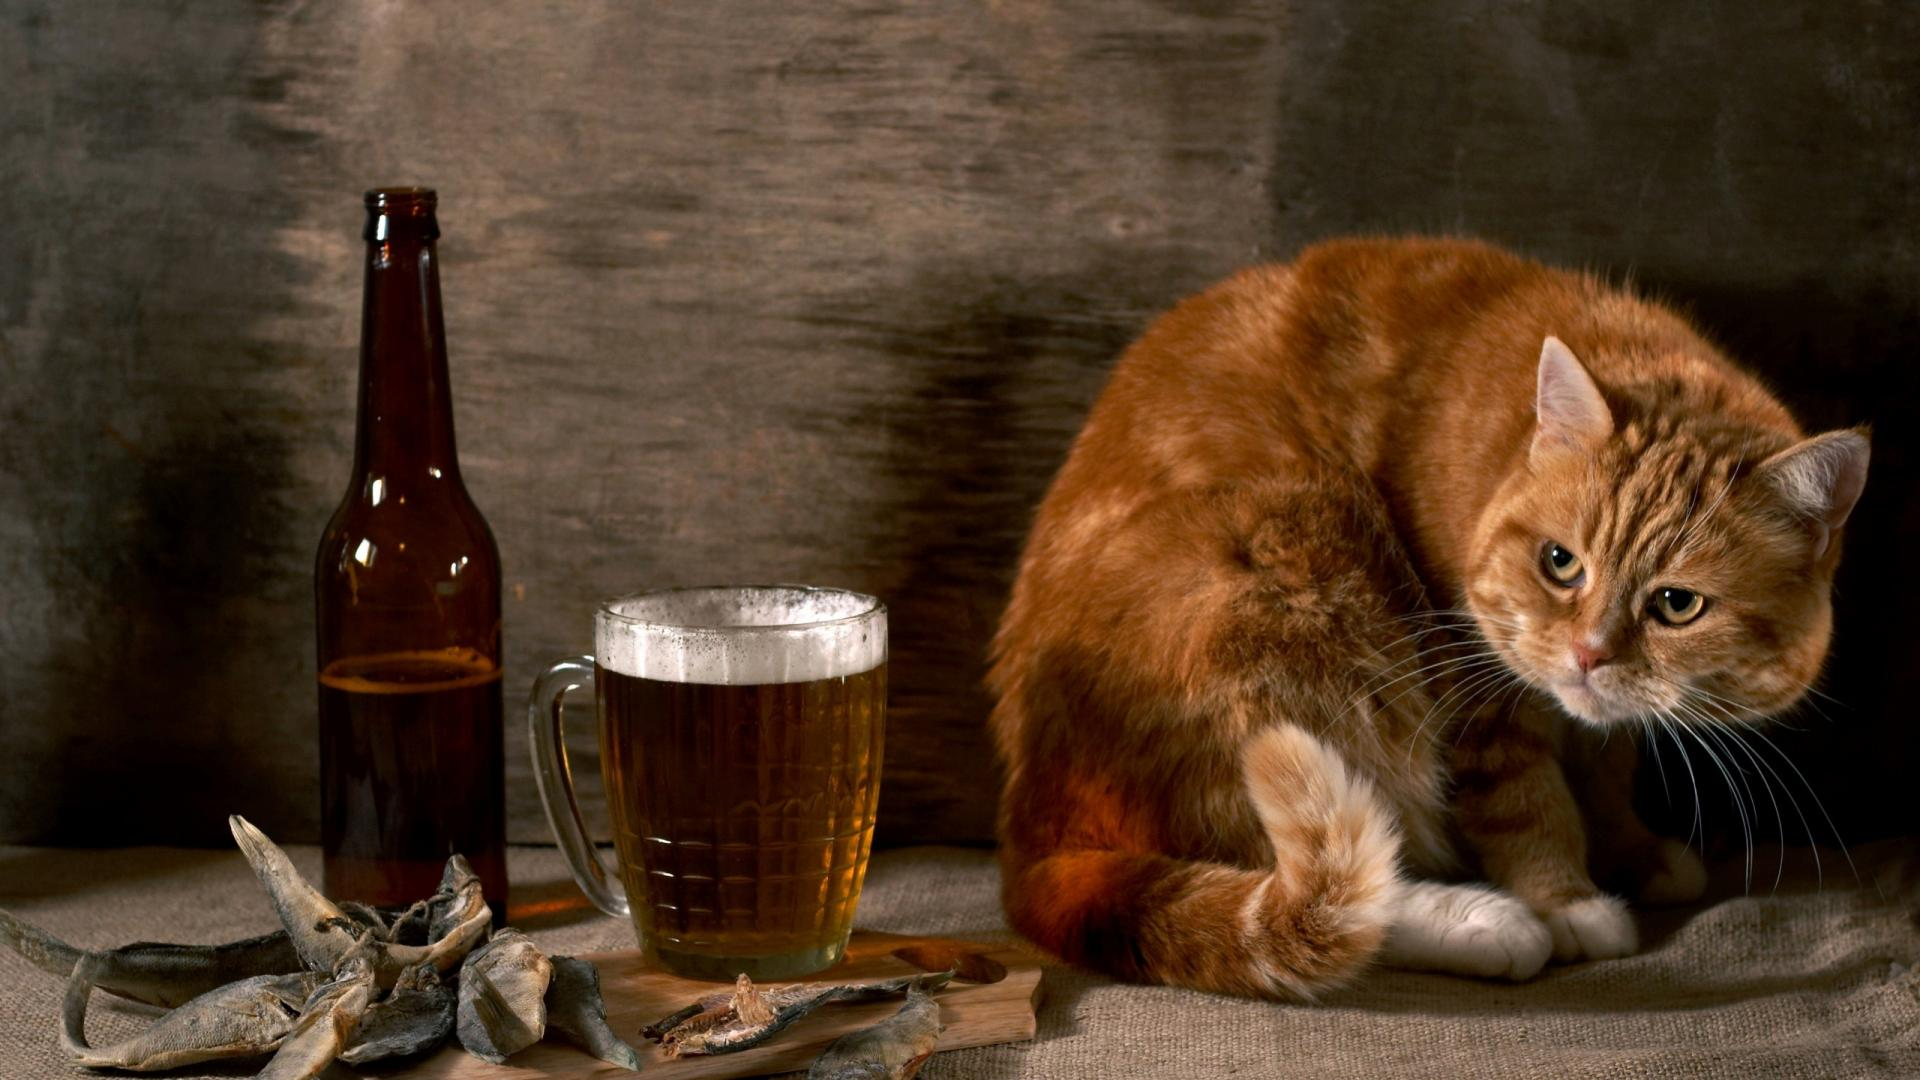 Funny Wallpapers For Desktop Hd Cat And Beer Funny Animal Wallpaper Hd Free For Desktop